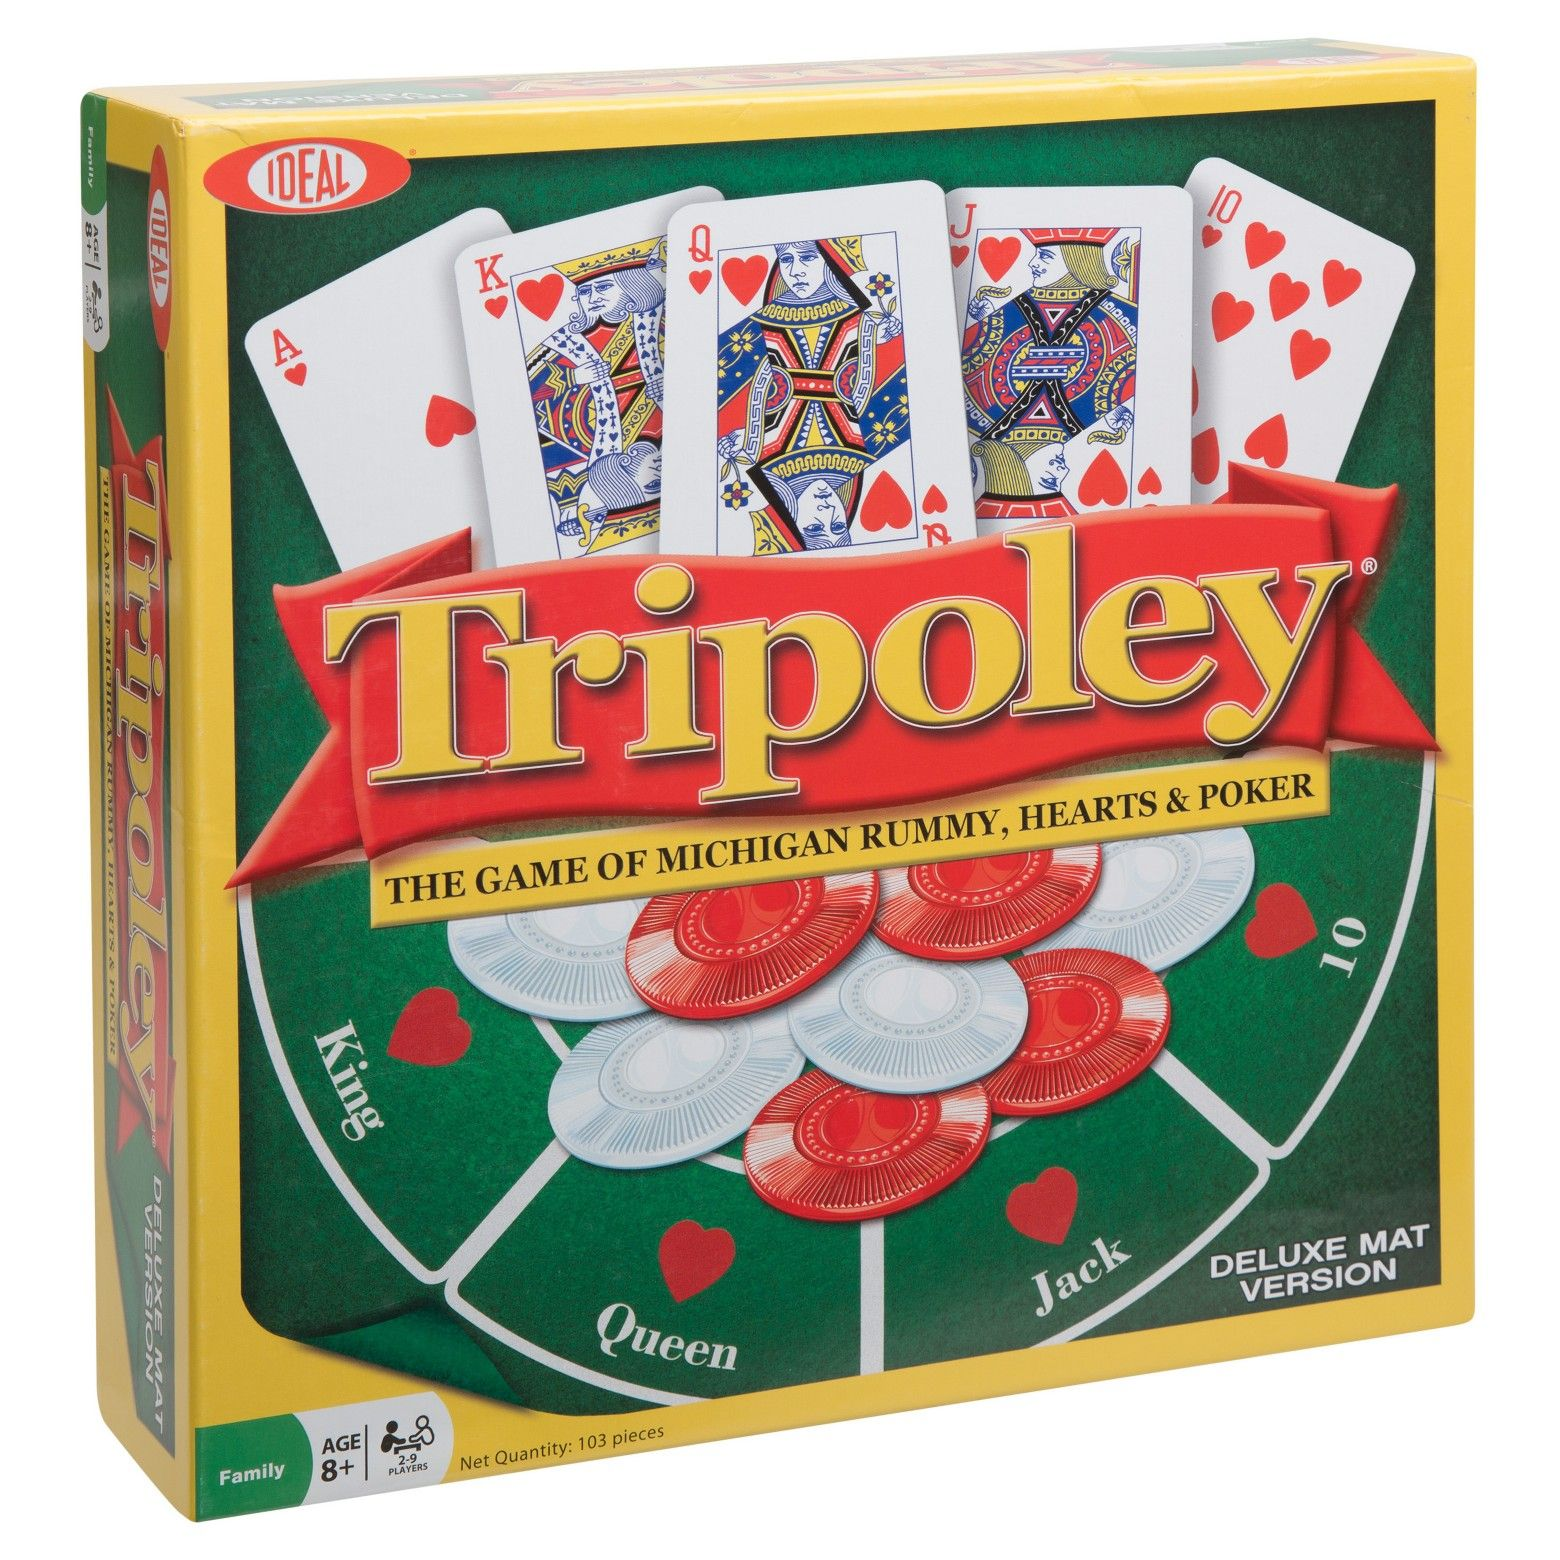 Tripoley® is the bestselling family classic that mixes